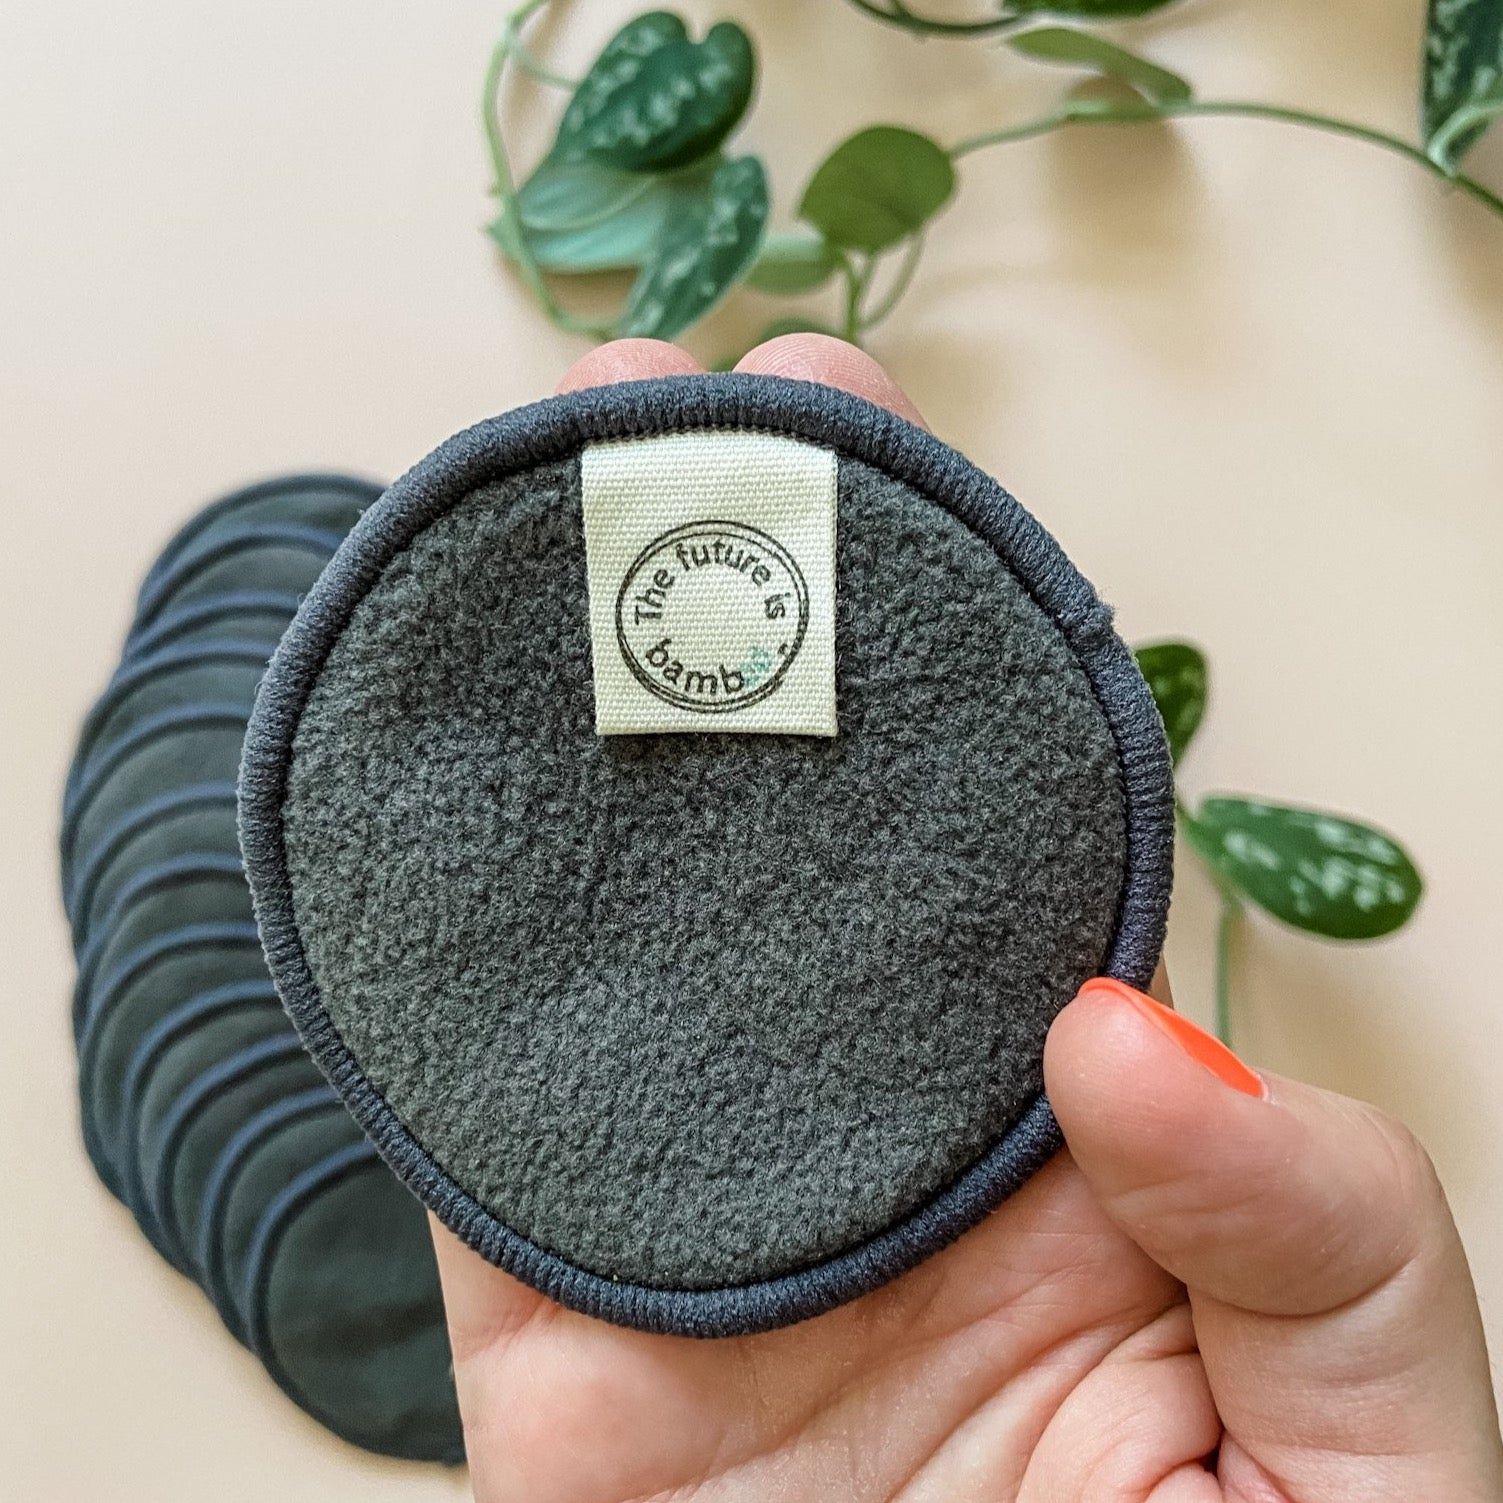 Bamboo Charcoal Facial Rounds <br> REFILL KIT